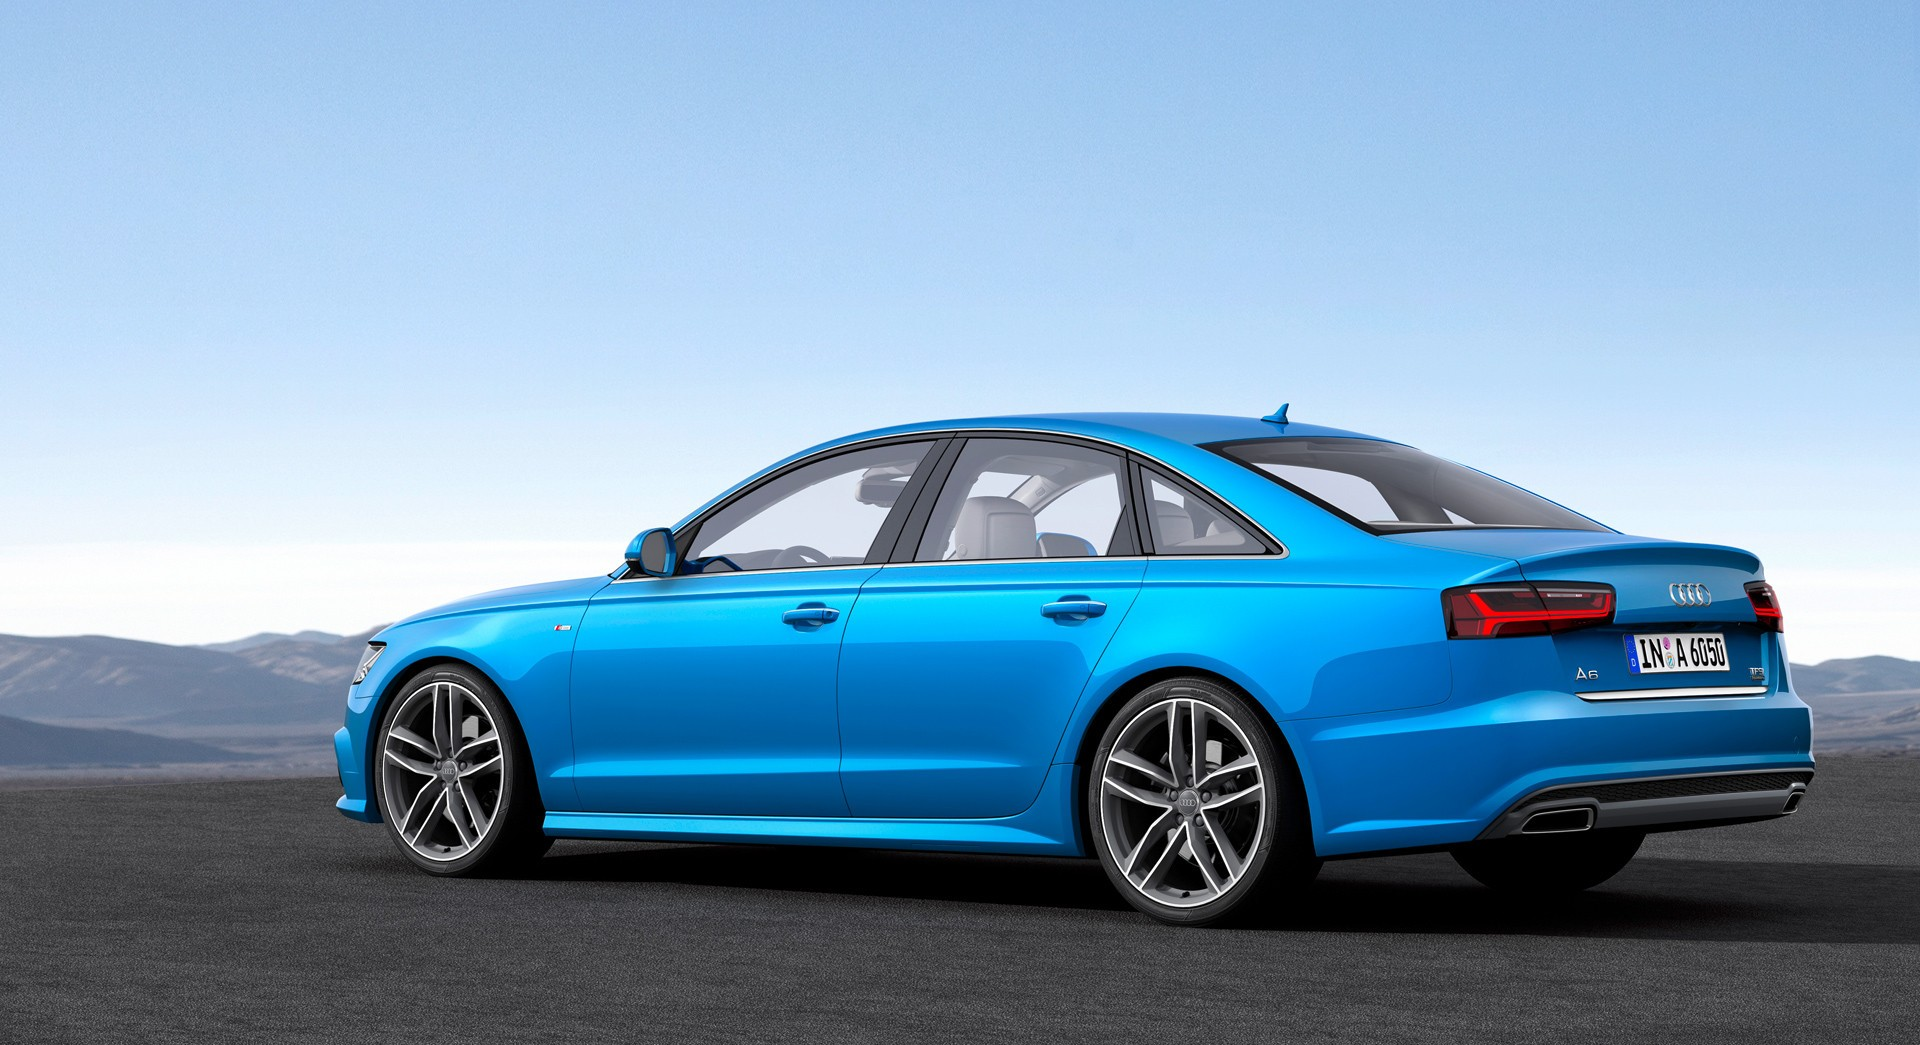 Audi a6 wallpapers for desktop